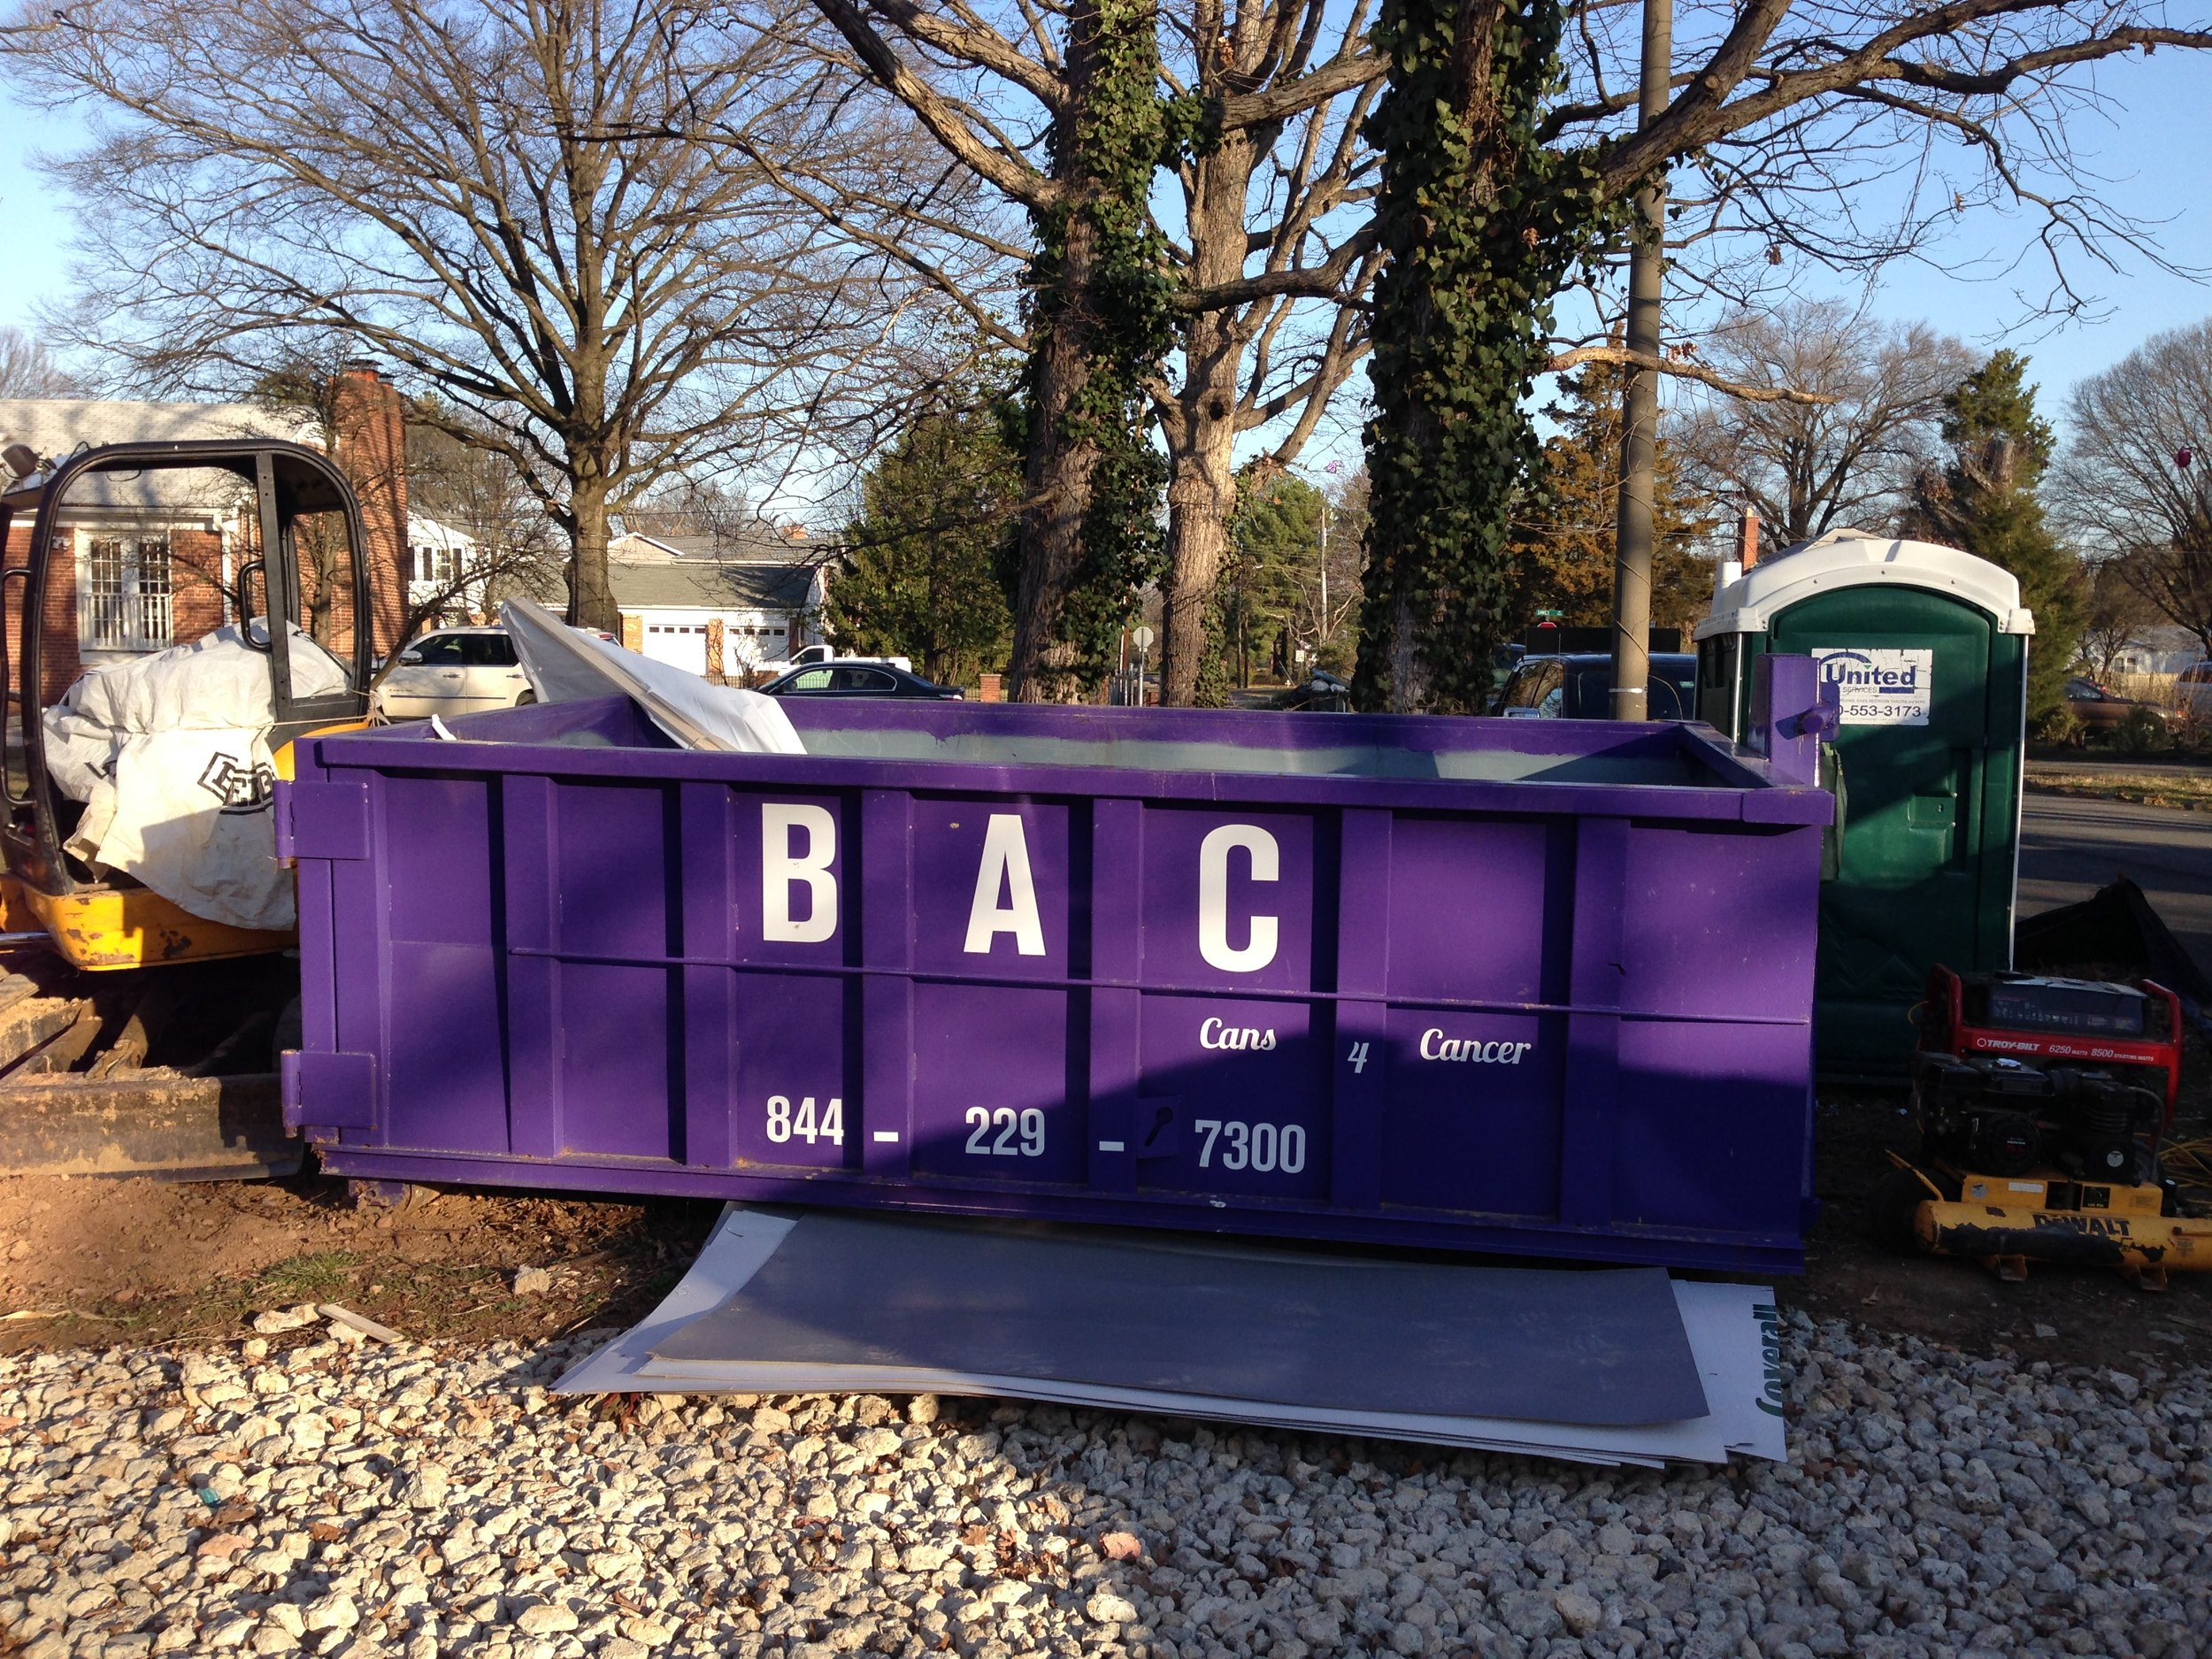 8:15 - Our purple dumpster for all the trash that will come off of the modular units. It will fill up about half of the trash. However, for typical construction this dumpster would be filled every 1-2 weeks.